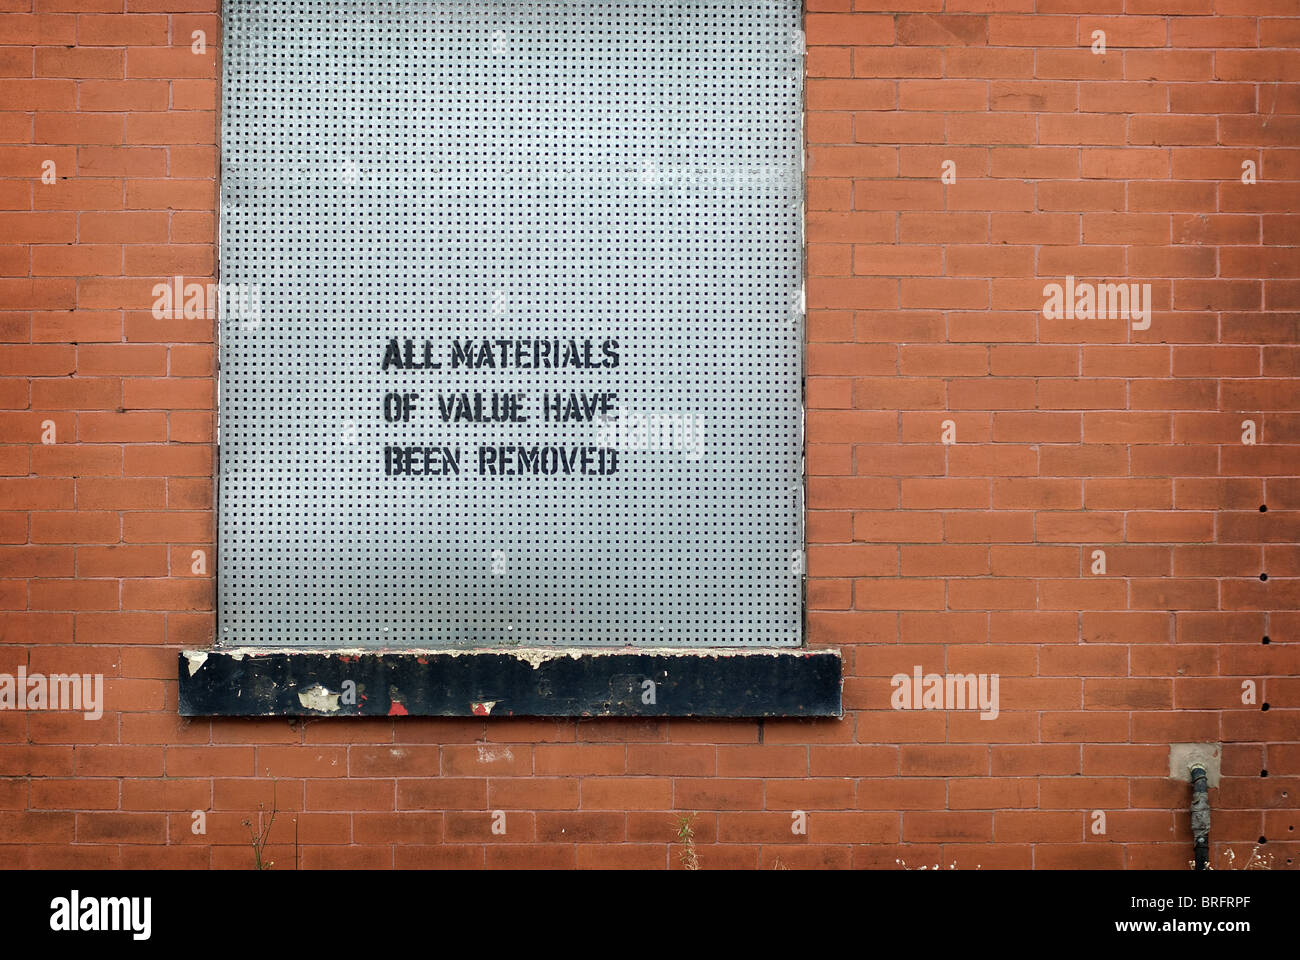 All materials of value have been removed - Stock Image